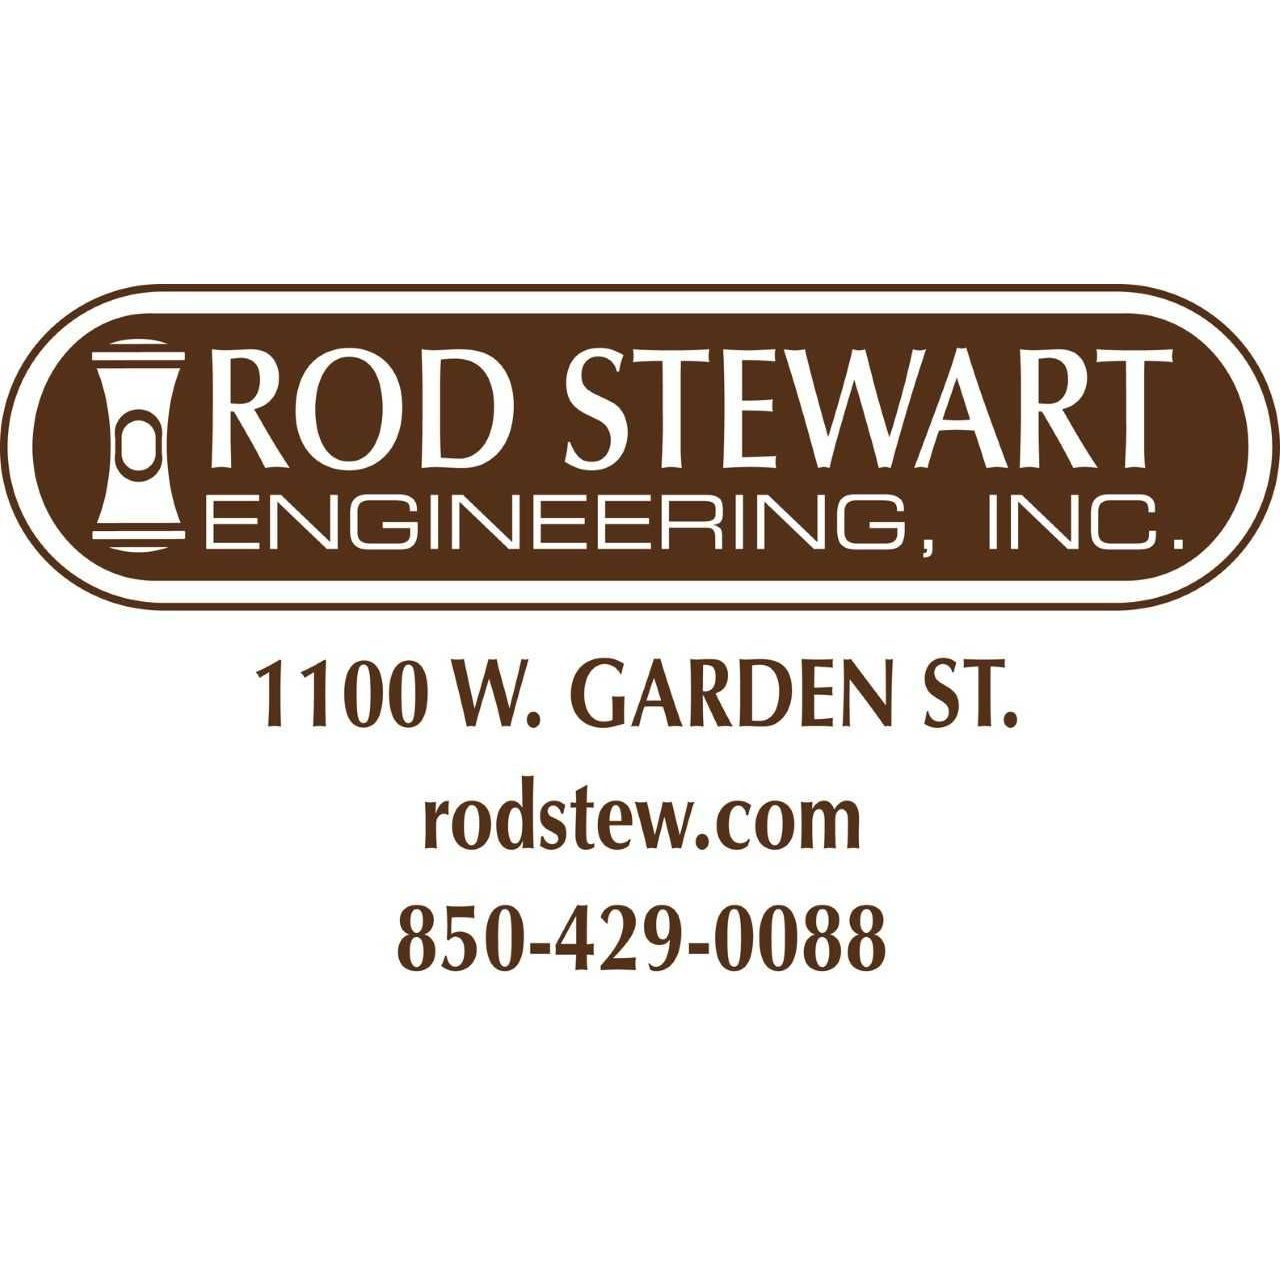 Rod Stewart Engineering, Inc.